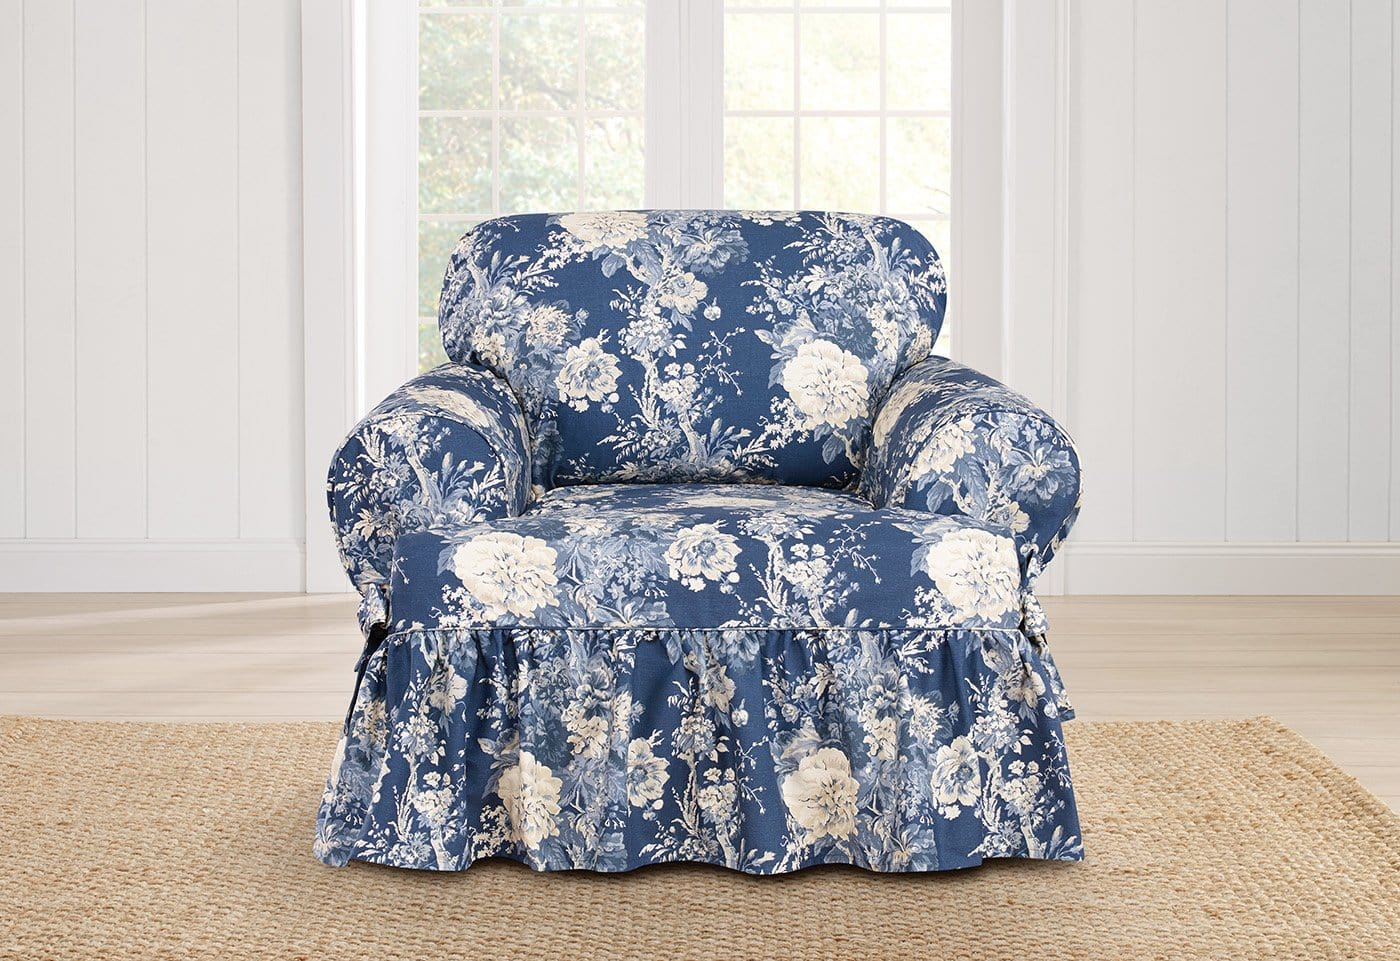 Ballad Bouquet By Waverly One Piece Chair Slipcover - Final Sale